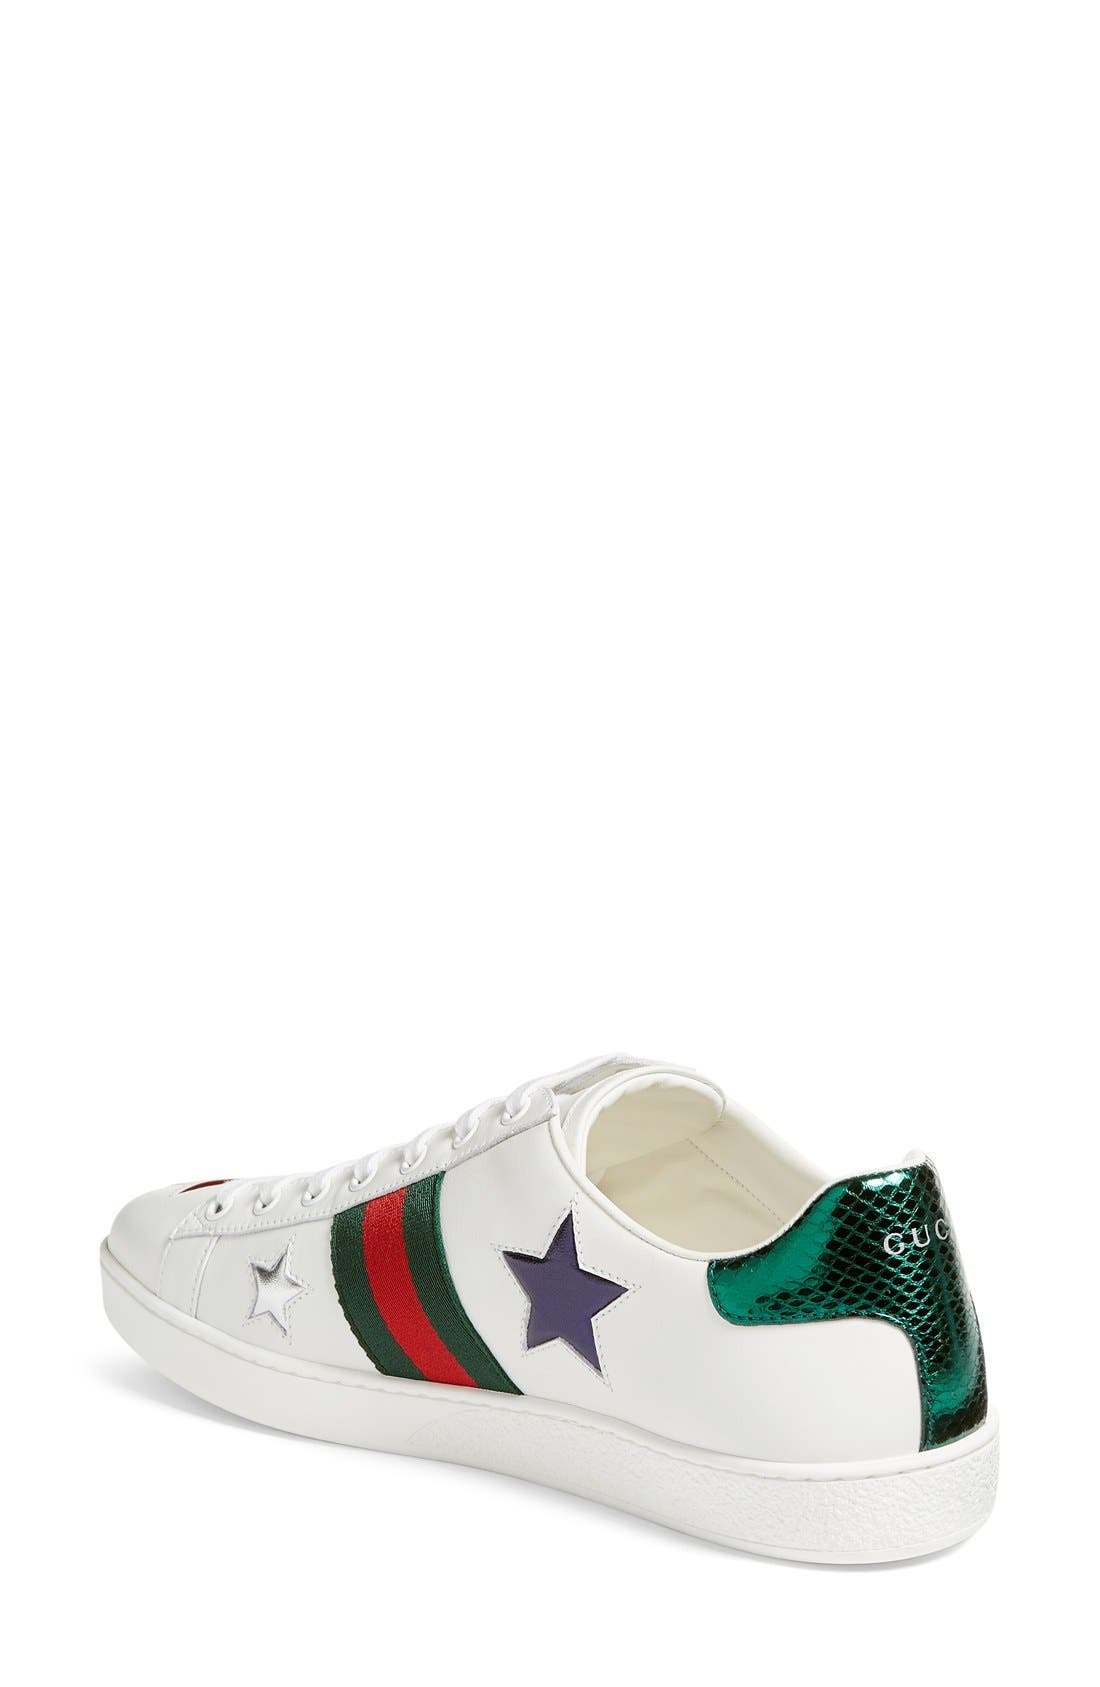 GUCCI, New Ace Star Sneaker, Alternate thumbnail 5, color, WHITE MULTI